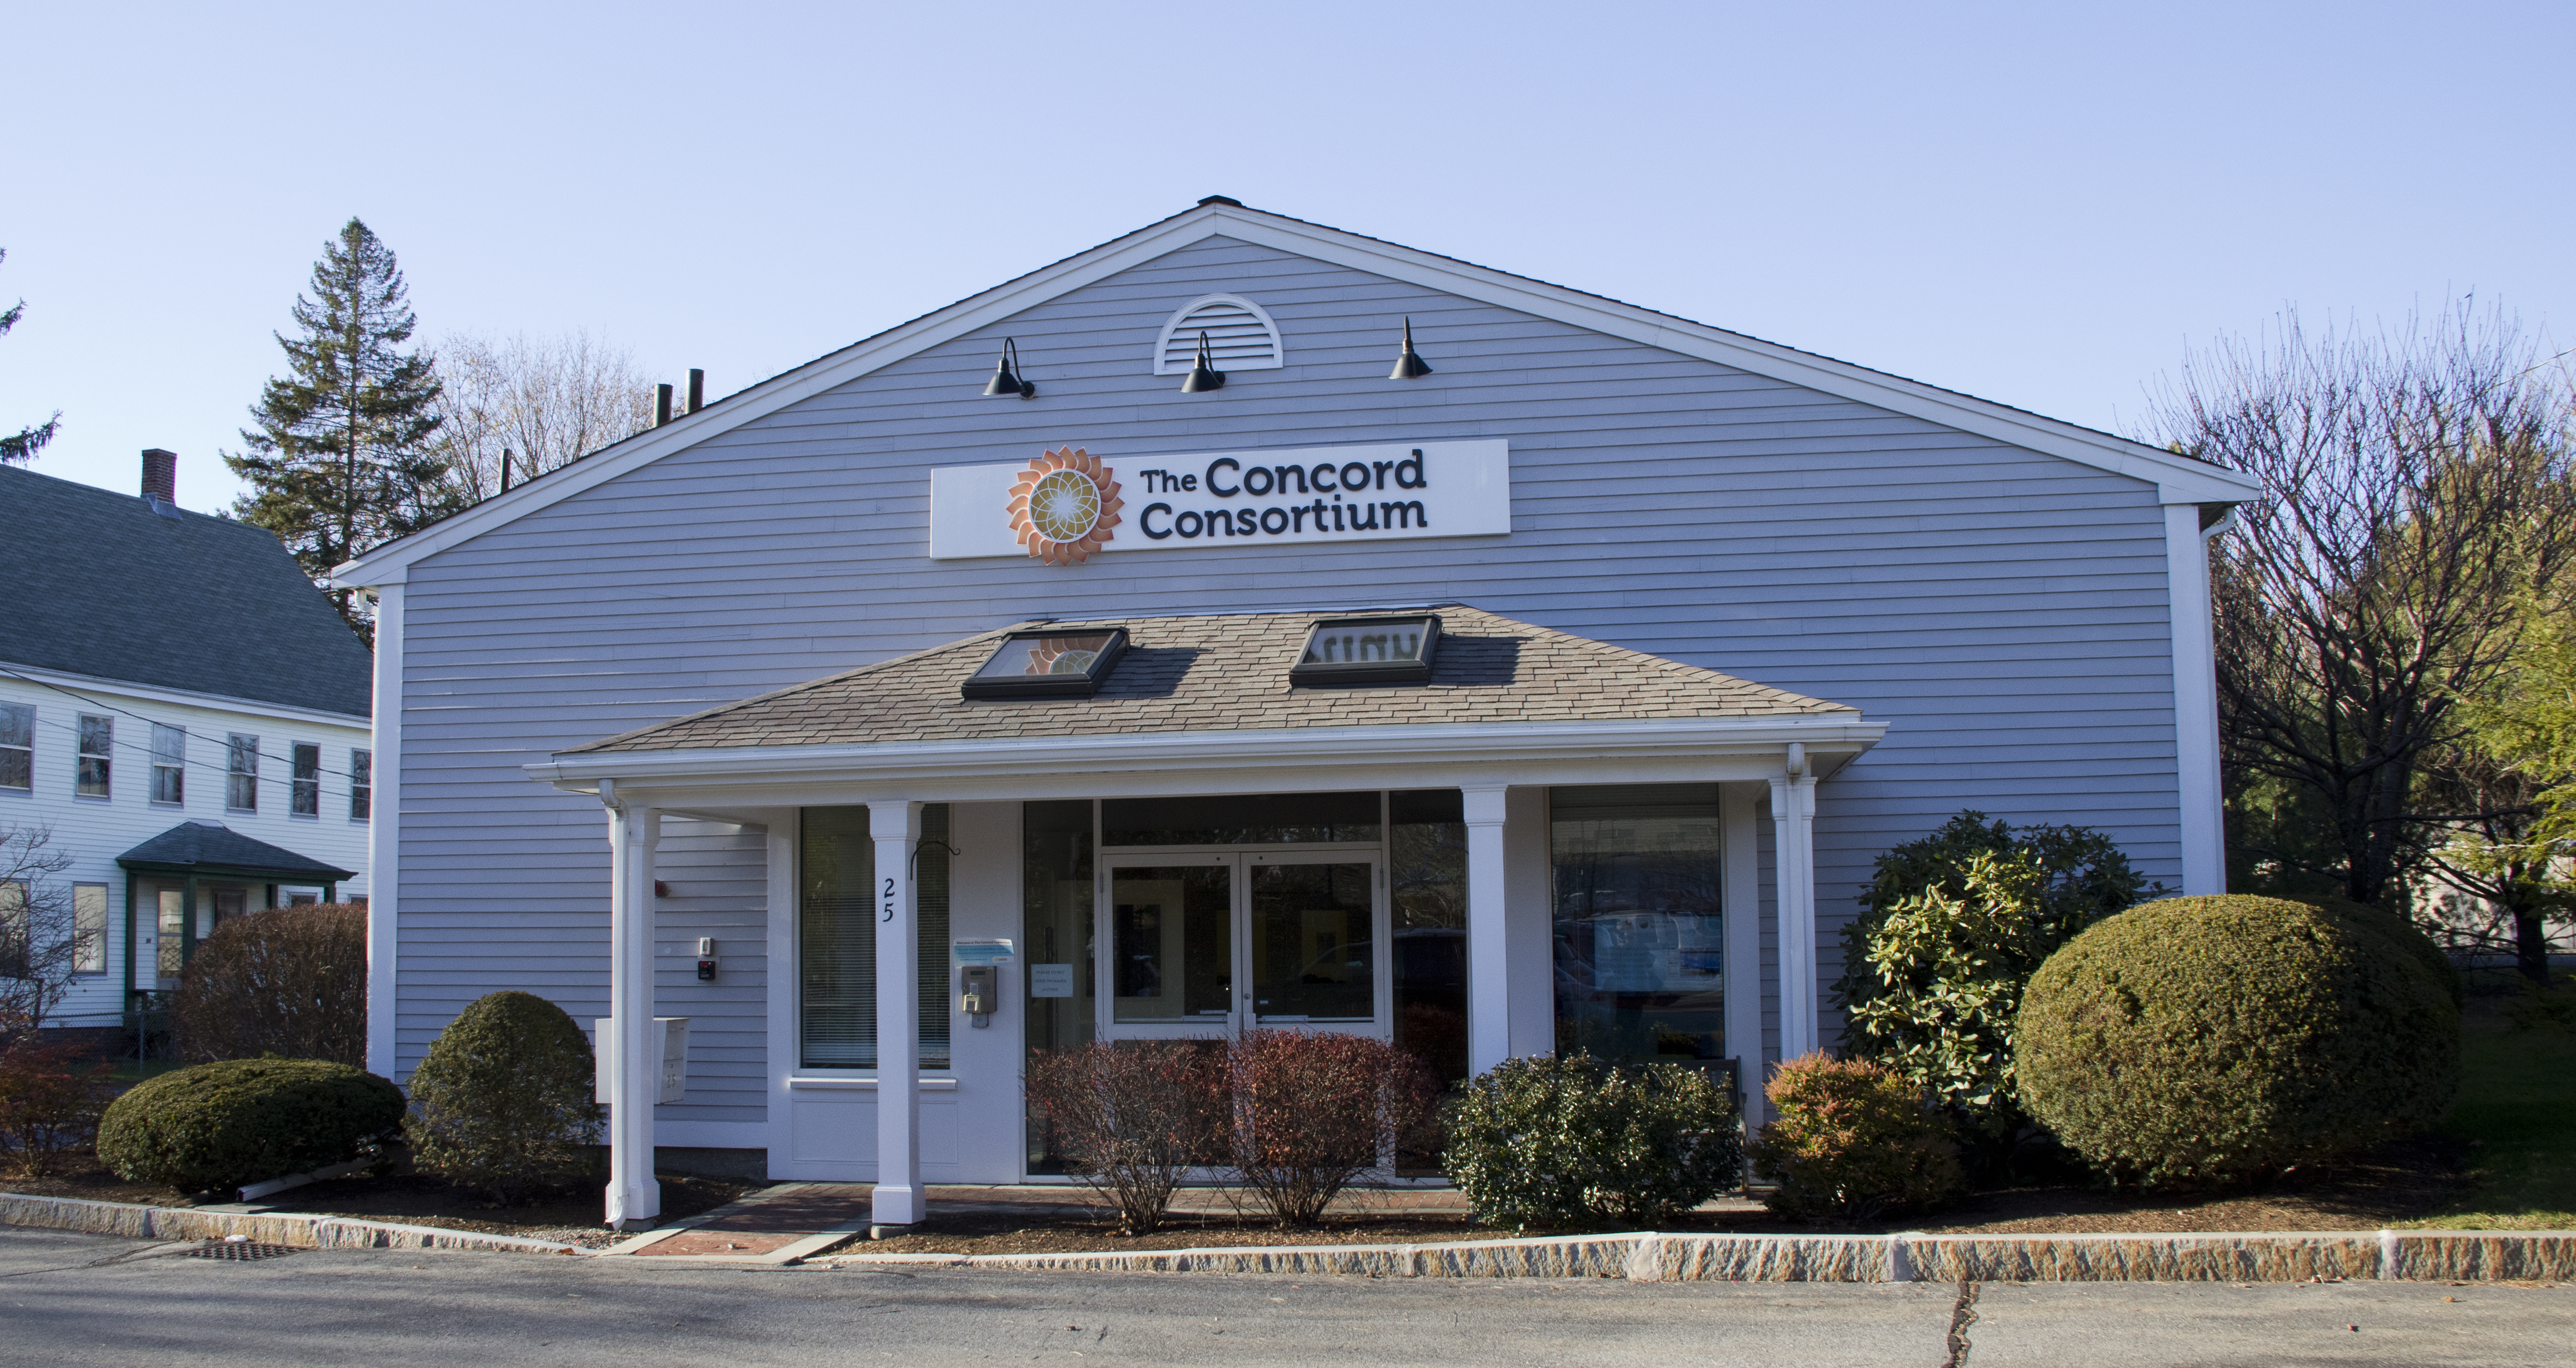 The Concord Consortium Natural Selection